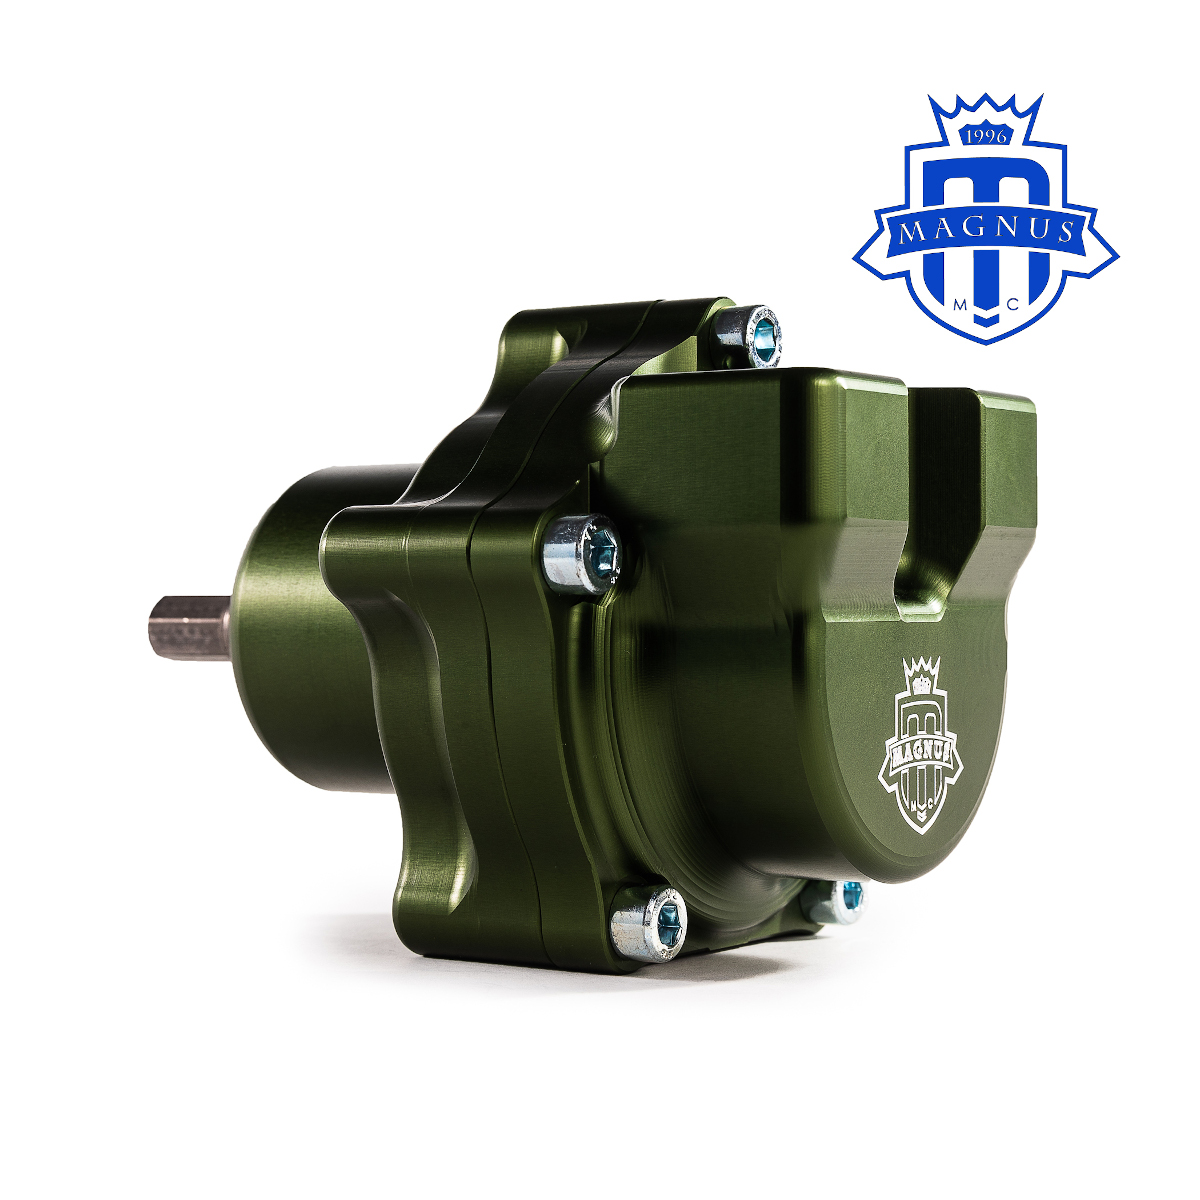 Magnus MF Mechanical Fuel Pump